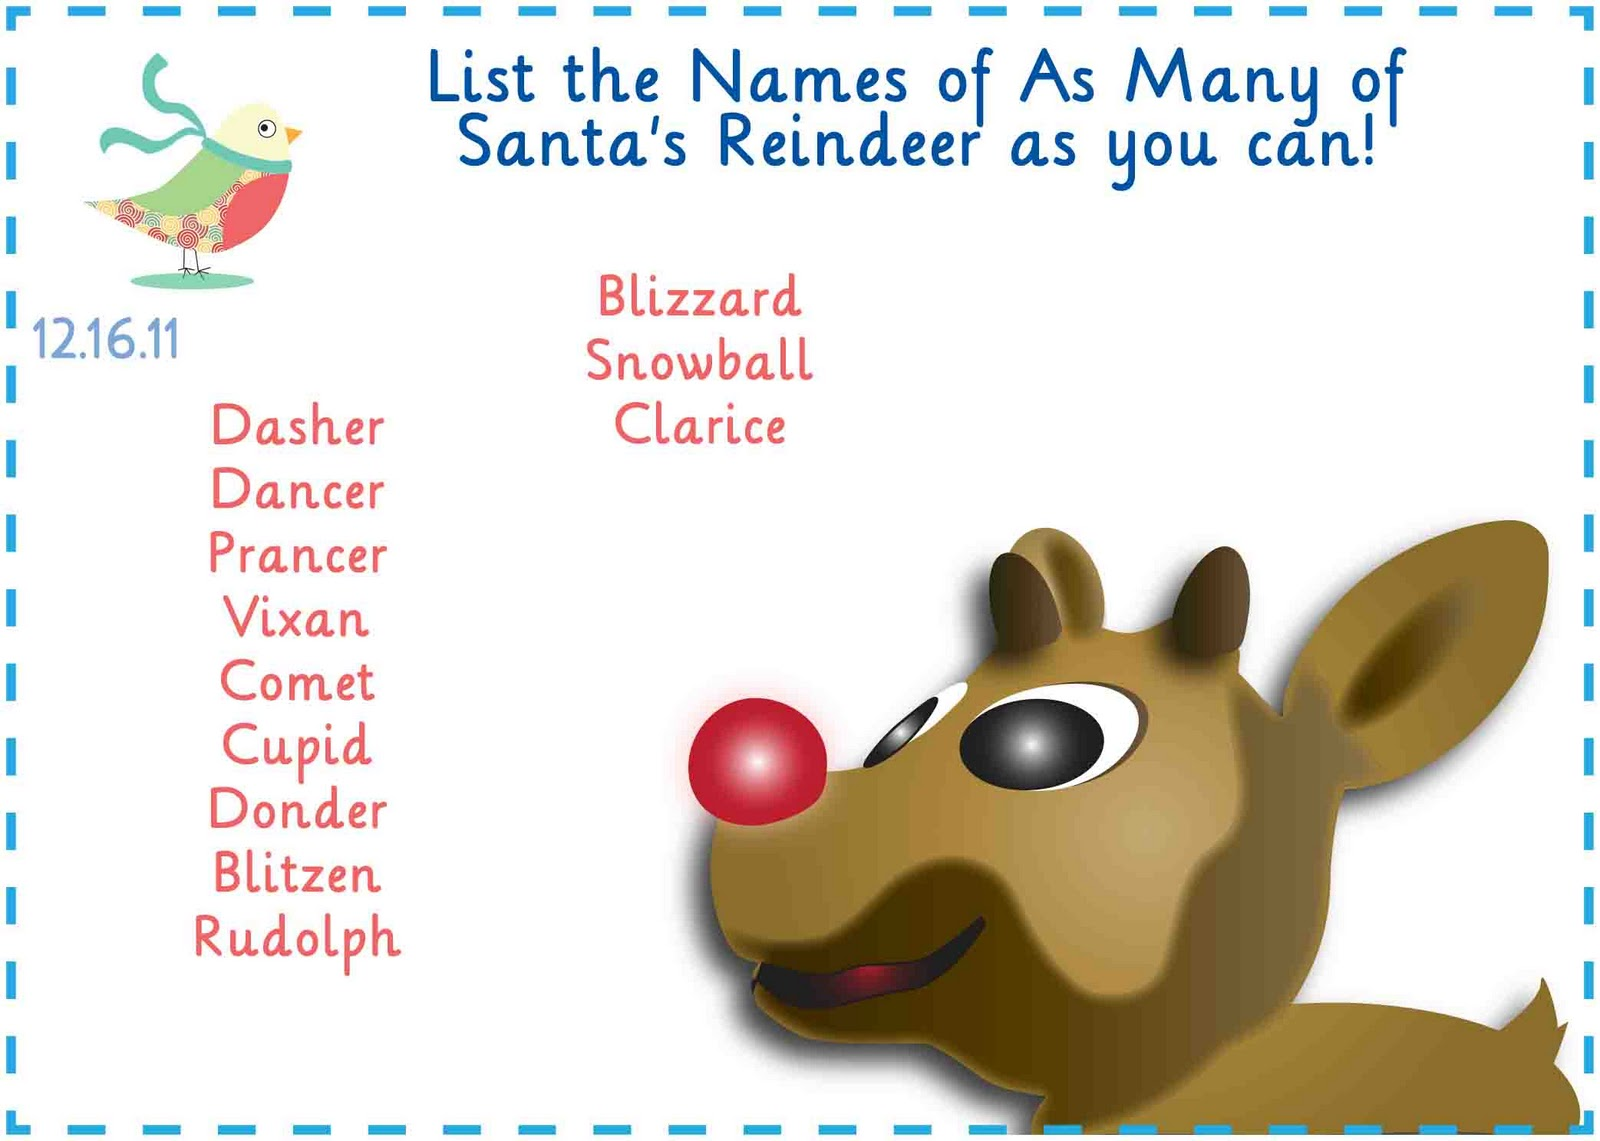 Santas Reindeer Names List the many names of